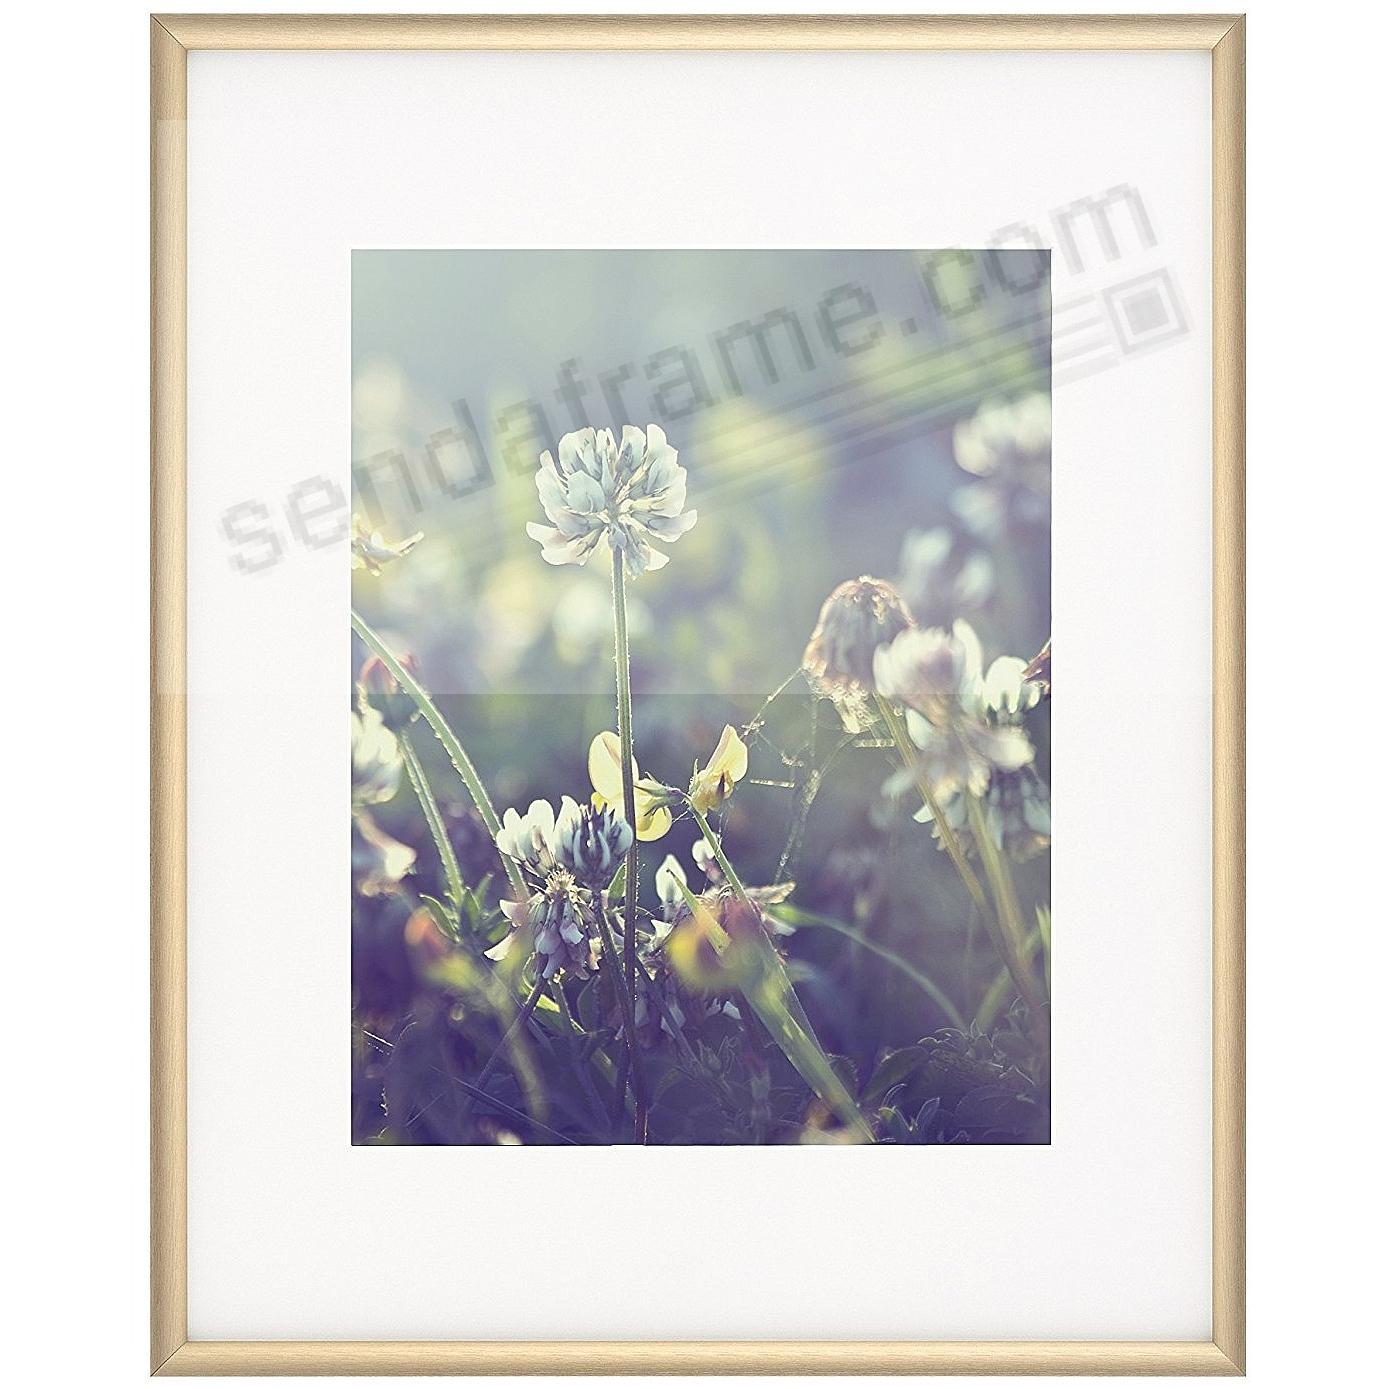 Satin-Gold COSMOPOLITAN matted metallic frame 16x20/11x14 from ARTCARE® by Nielsen®